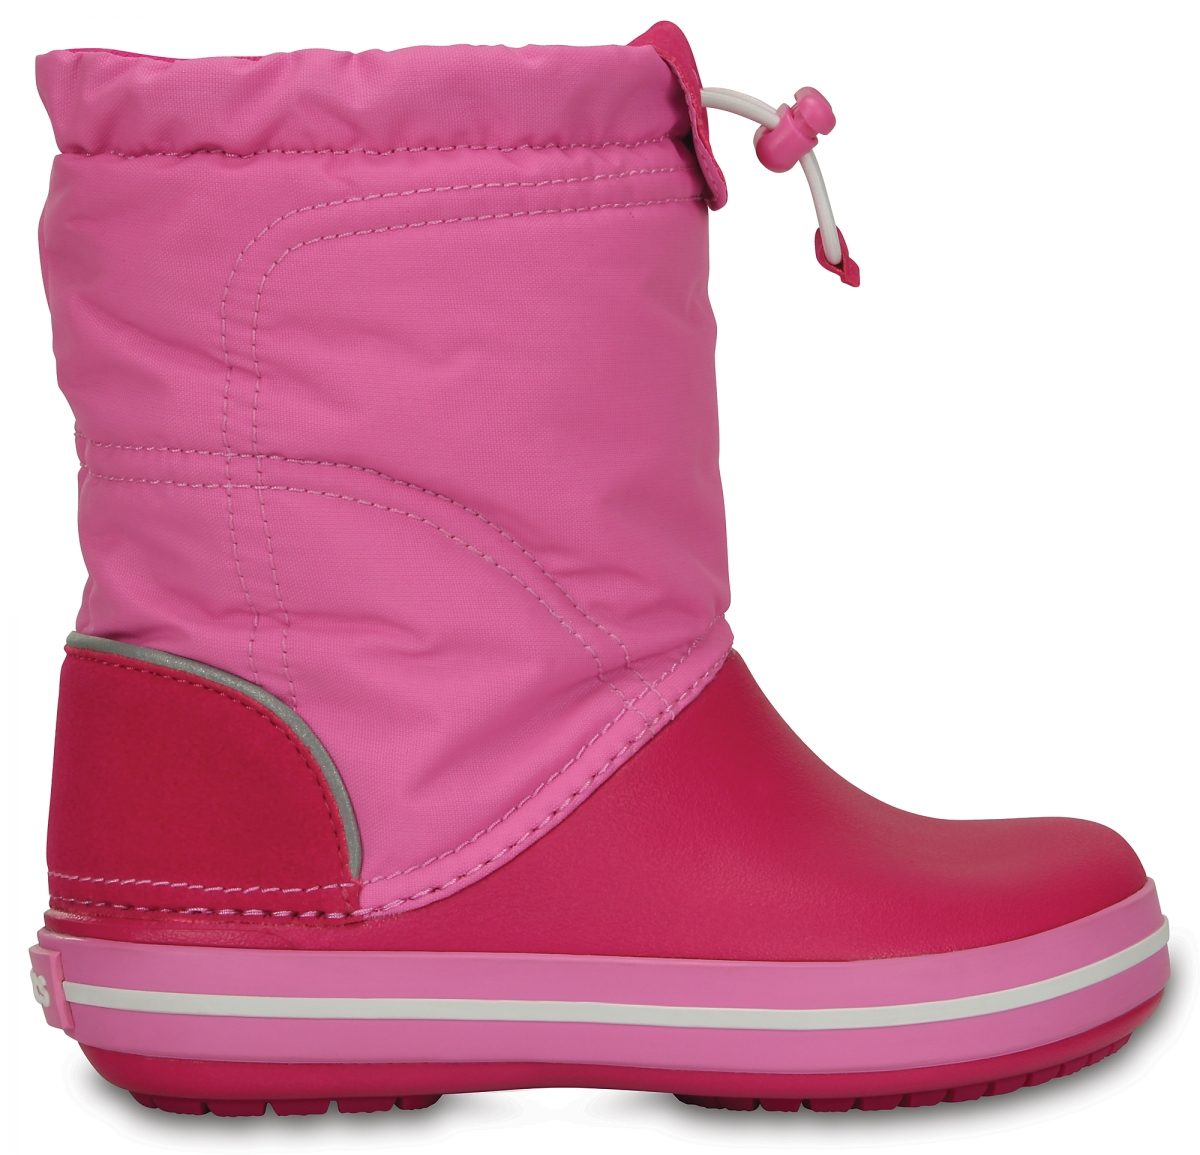 Crocs Crocband LodgePoint Boot Kids Candy Pink/Party Pink, J1 (32-33)